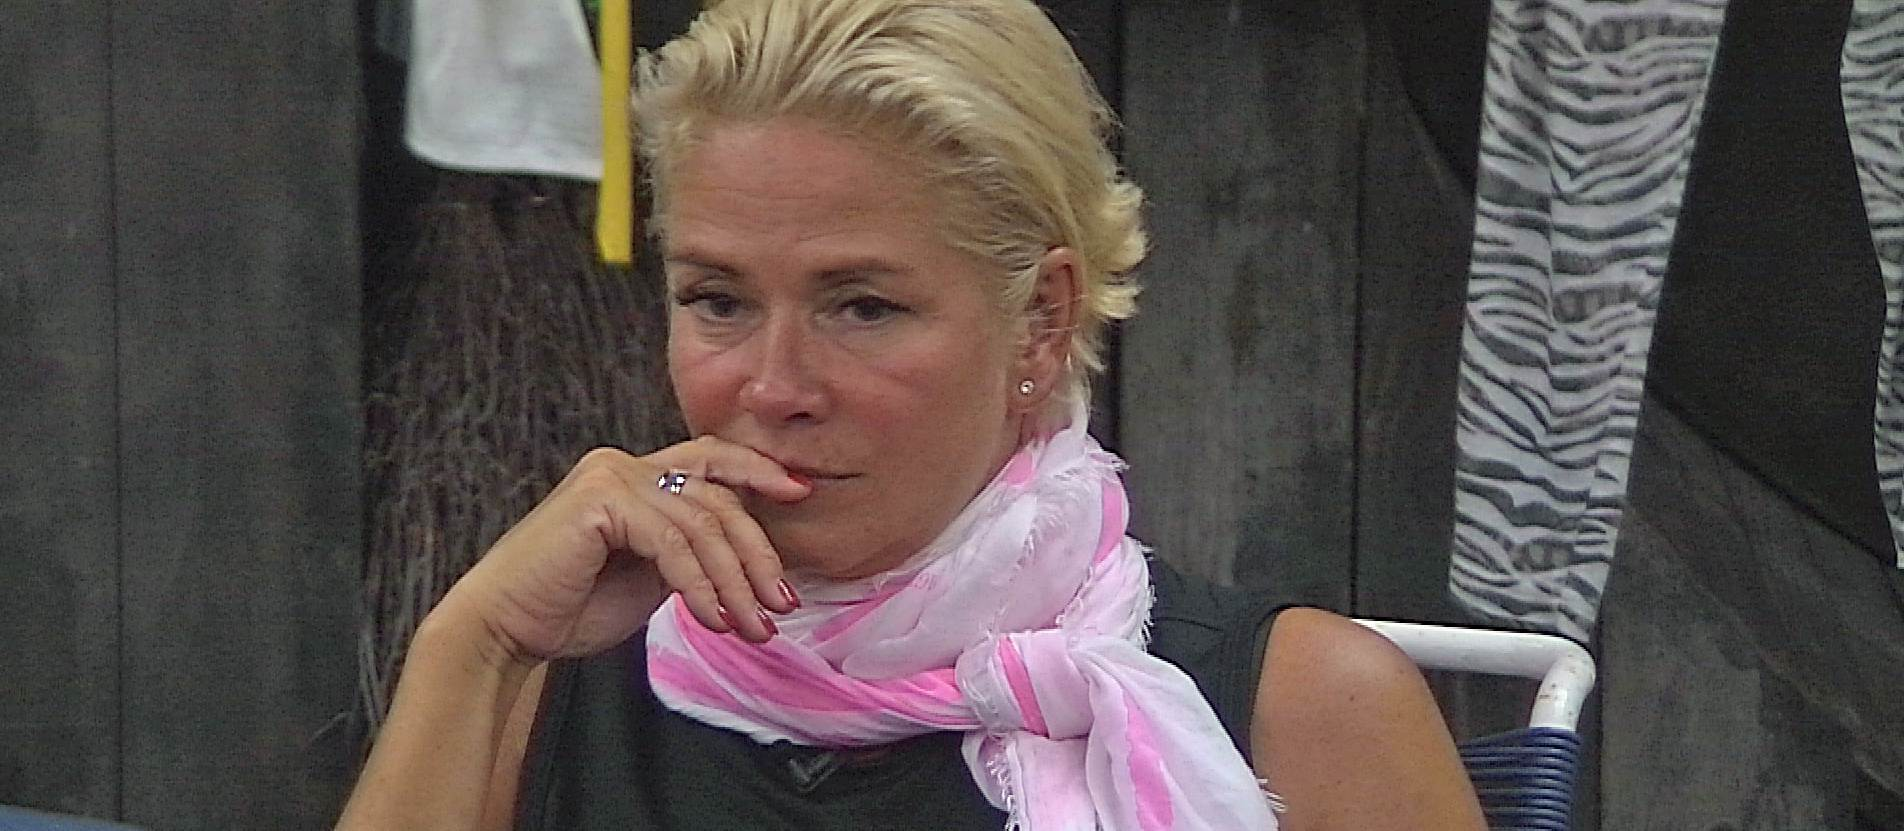 Promi Big Brother 2014 Claudia Effenberg Auszug